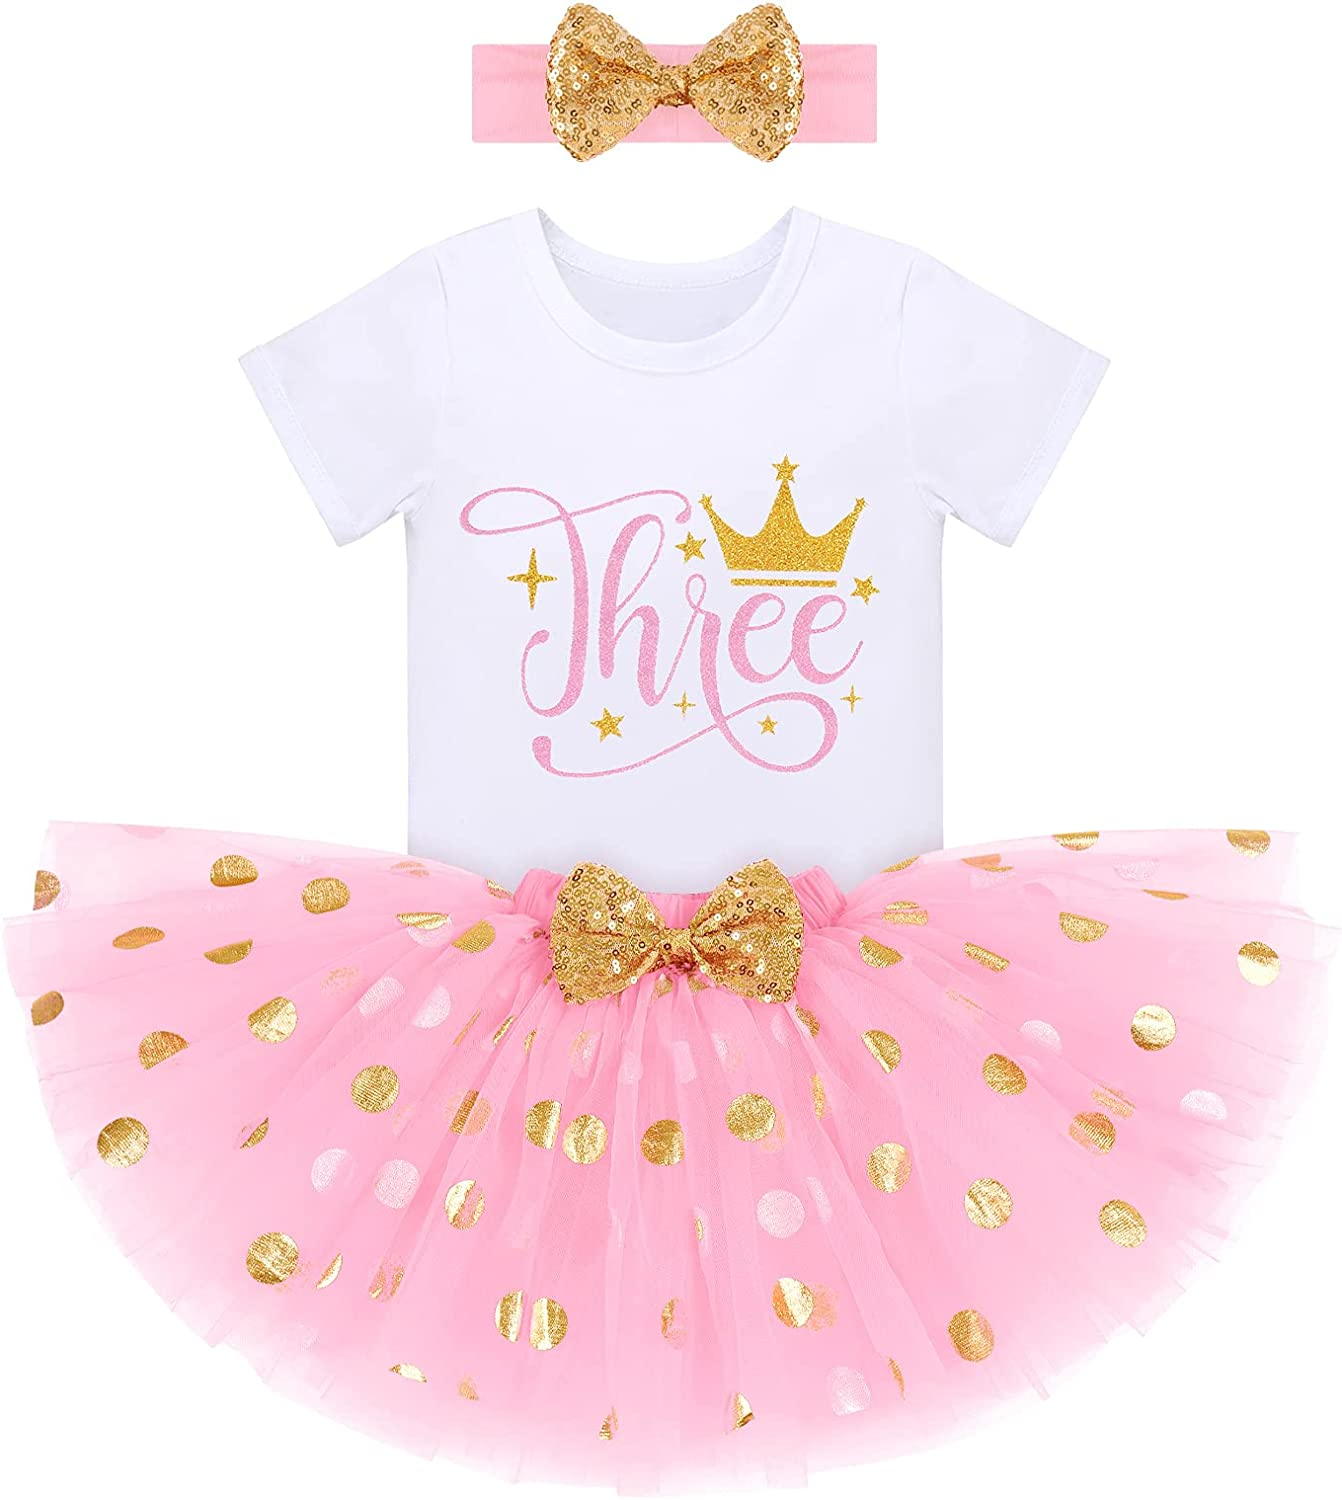 Baby Girls 1st/2nd/3rd Birthday Cake Smash Wild One Party Clothes Set for Kids Princess Crown Romper Gold Polka Dots Dress